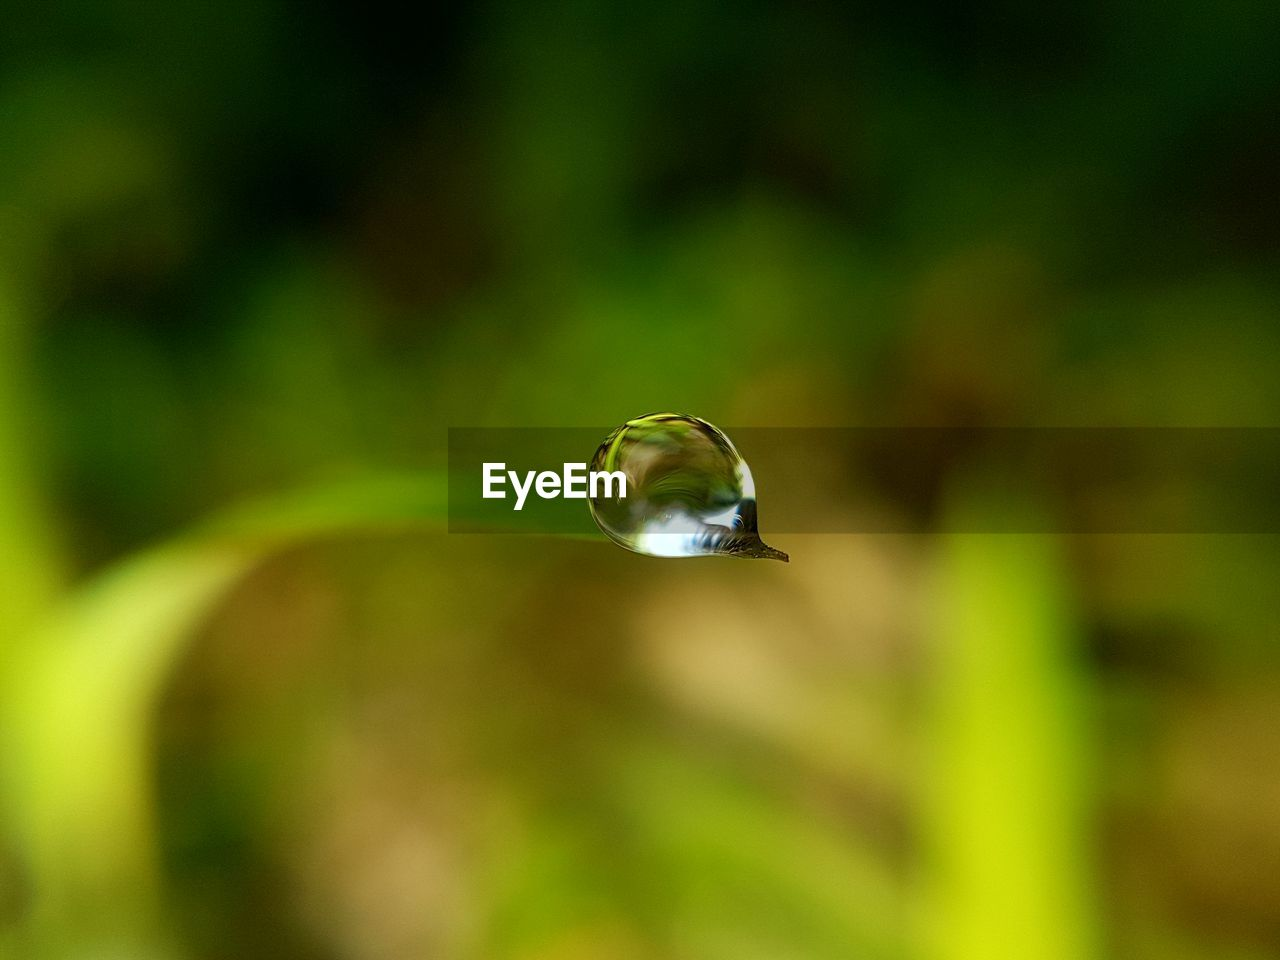 close-up, green color, focus on foreground, plant, no people, nature, animals in the wild, animal wildlife, growth, day, animal themes, selective focus, beauty in nature, animal, one animal, fragility, vulnerability, mid-air, outdoors, purity, blade of grass